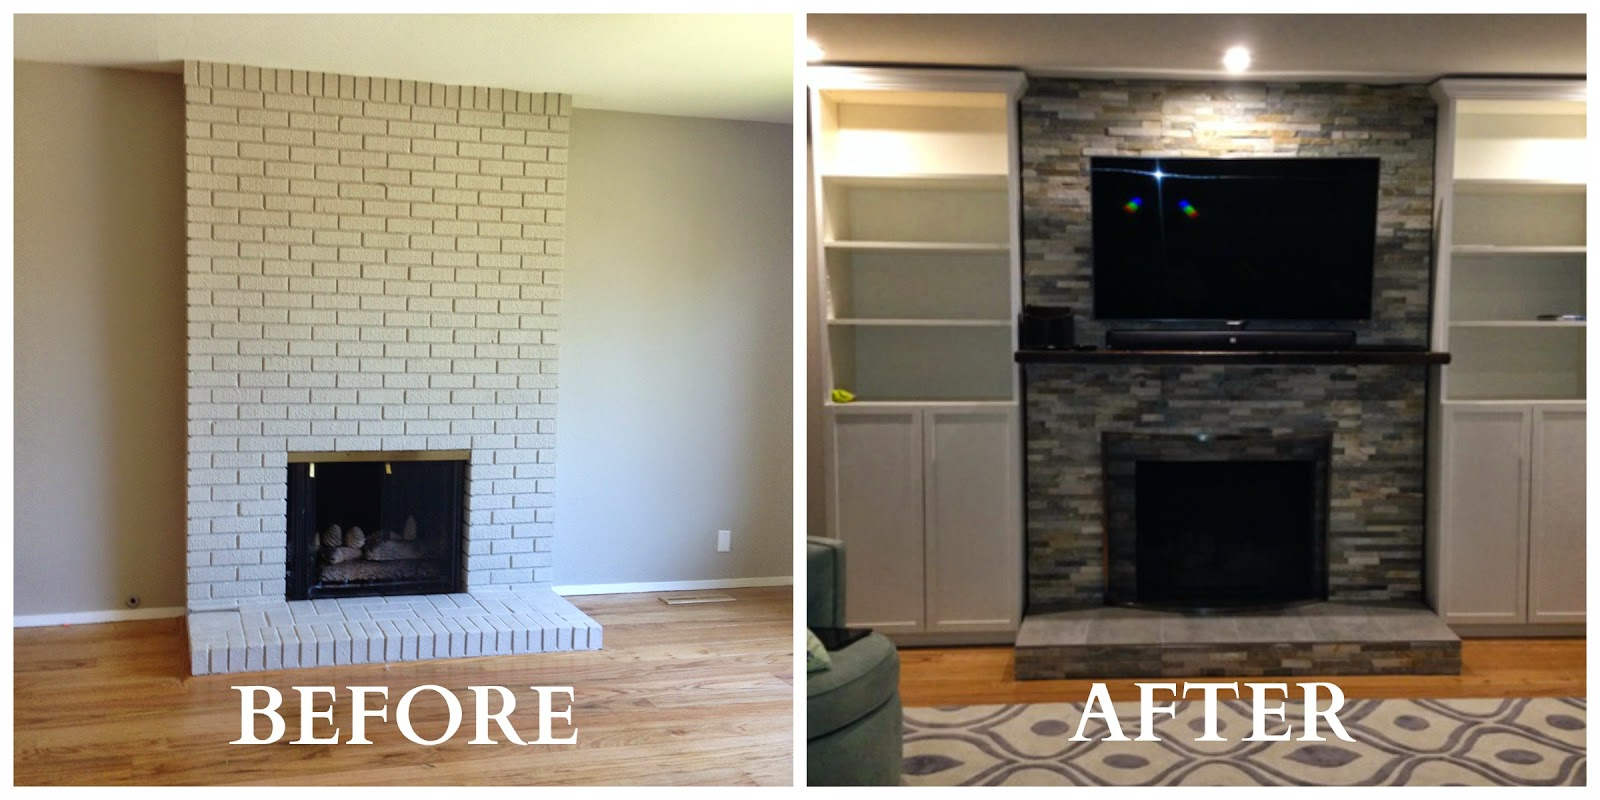 Greyowlconstruction fireplace remodels and masonry work for Fireplace renovations before and after